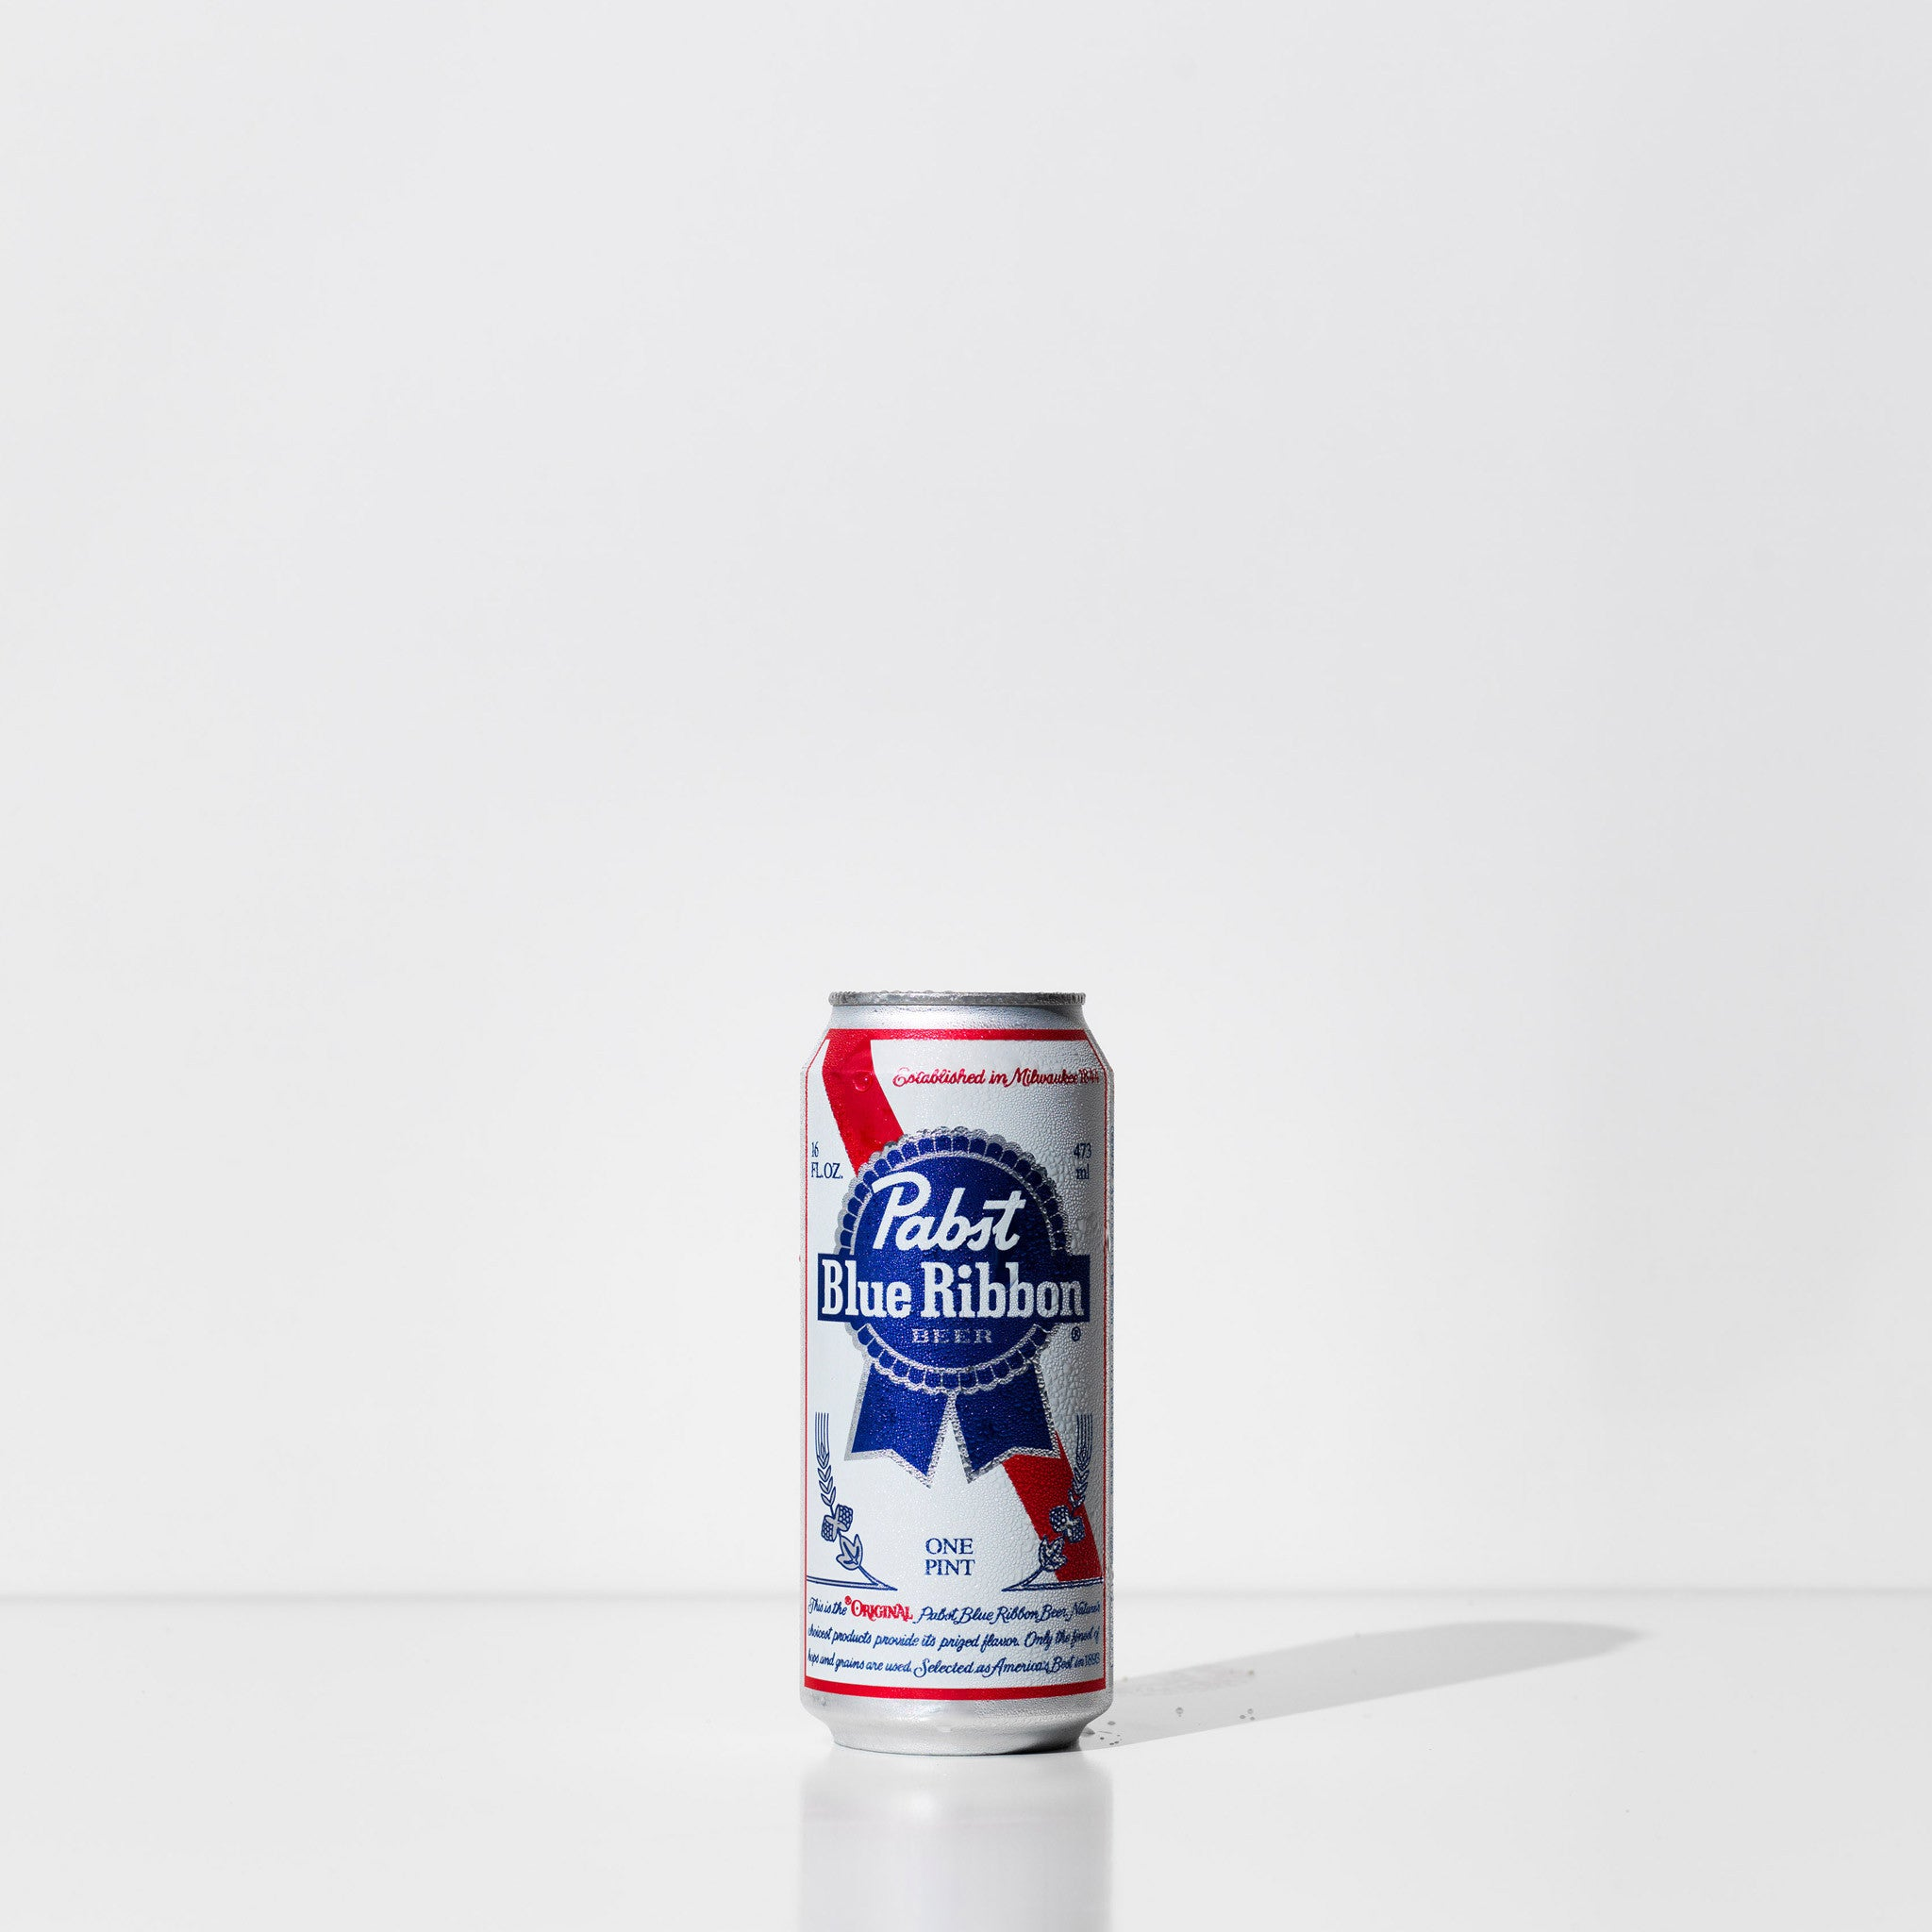 Butter Beer Pabst Blue Ribbon